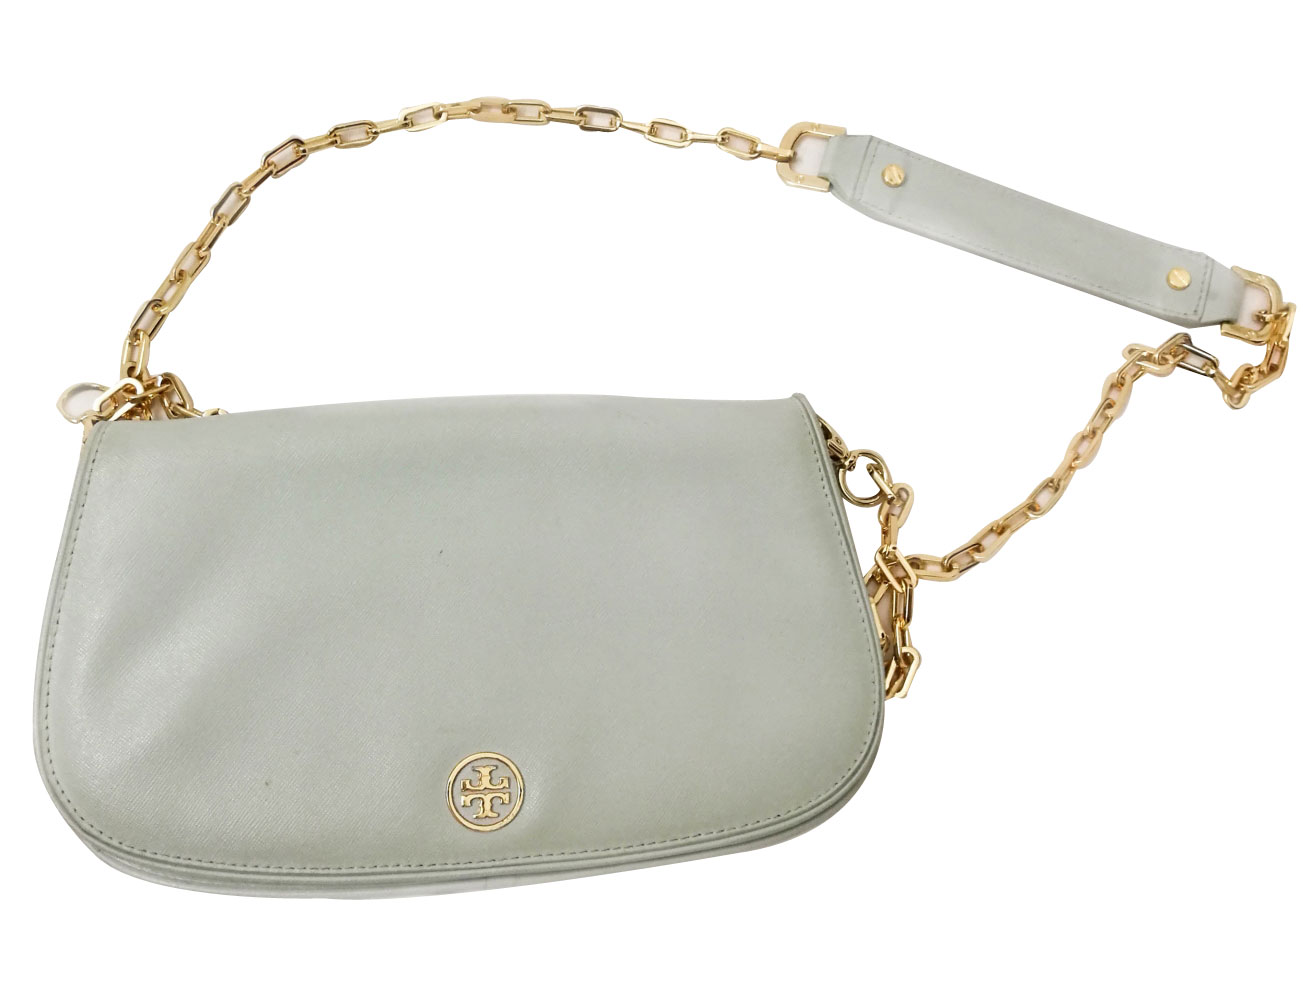 0e3080d9976 Tory Burch - Crossbody Bag   MyPrivateDressing. Buy and sell vintage ...